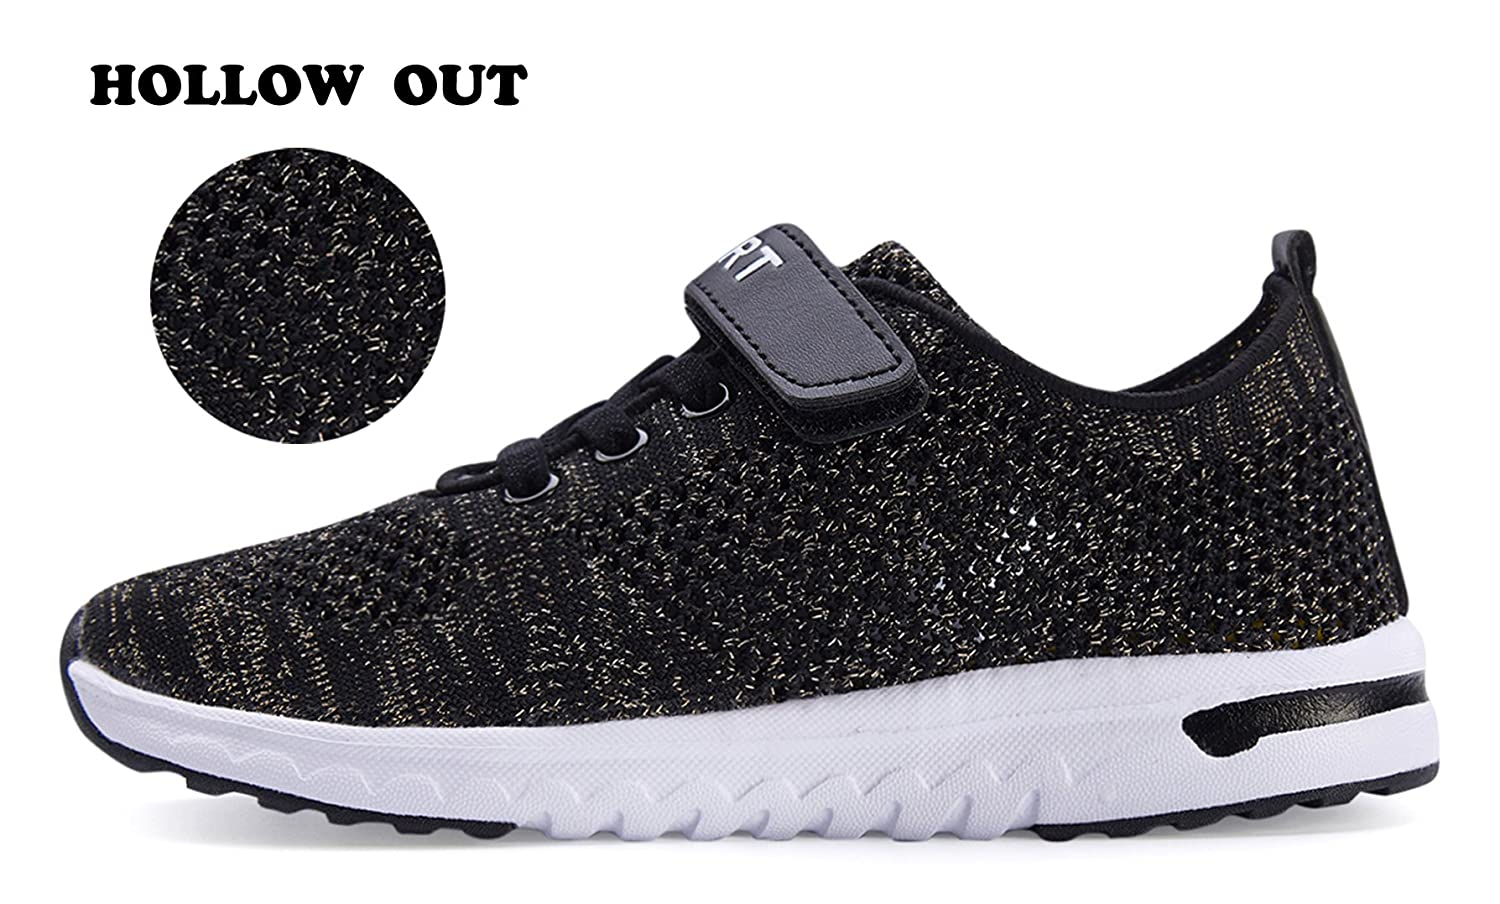 KARIDO Kids Breathable Knit Sneakers Lightweight Athletic Running Shoes EU 32,G-Black